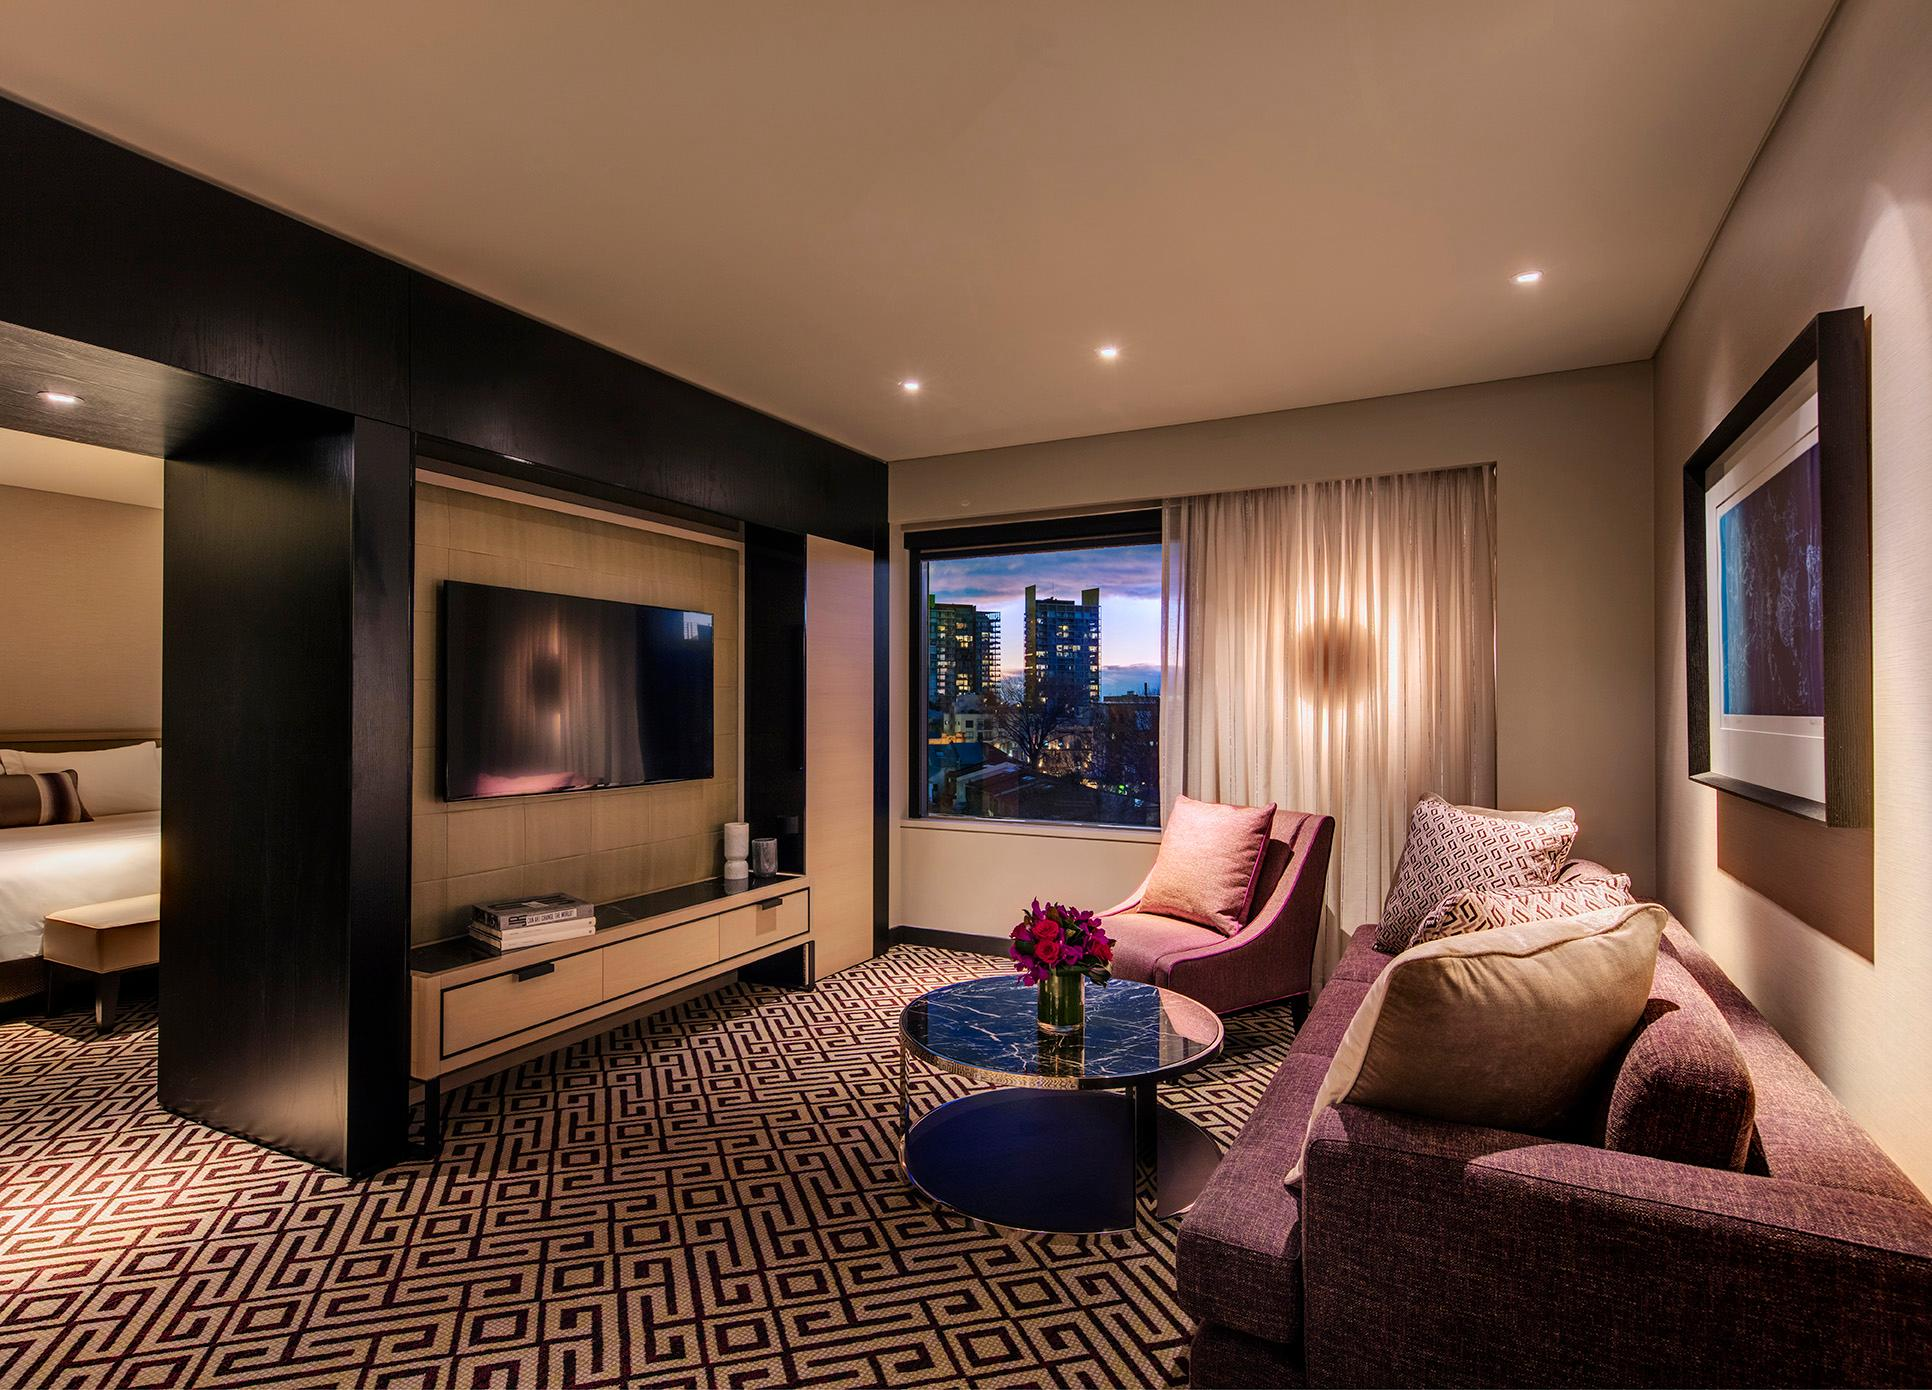 The Star Astral Residences